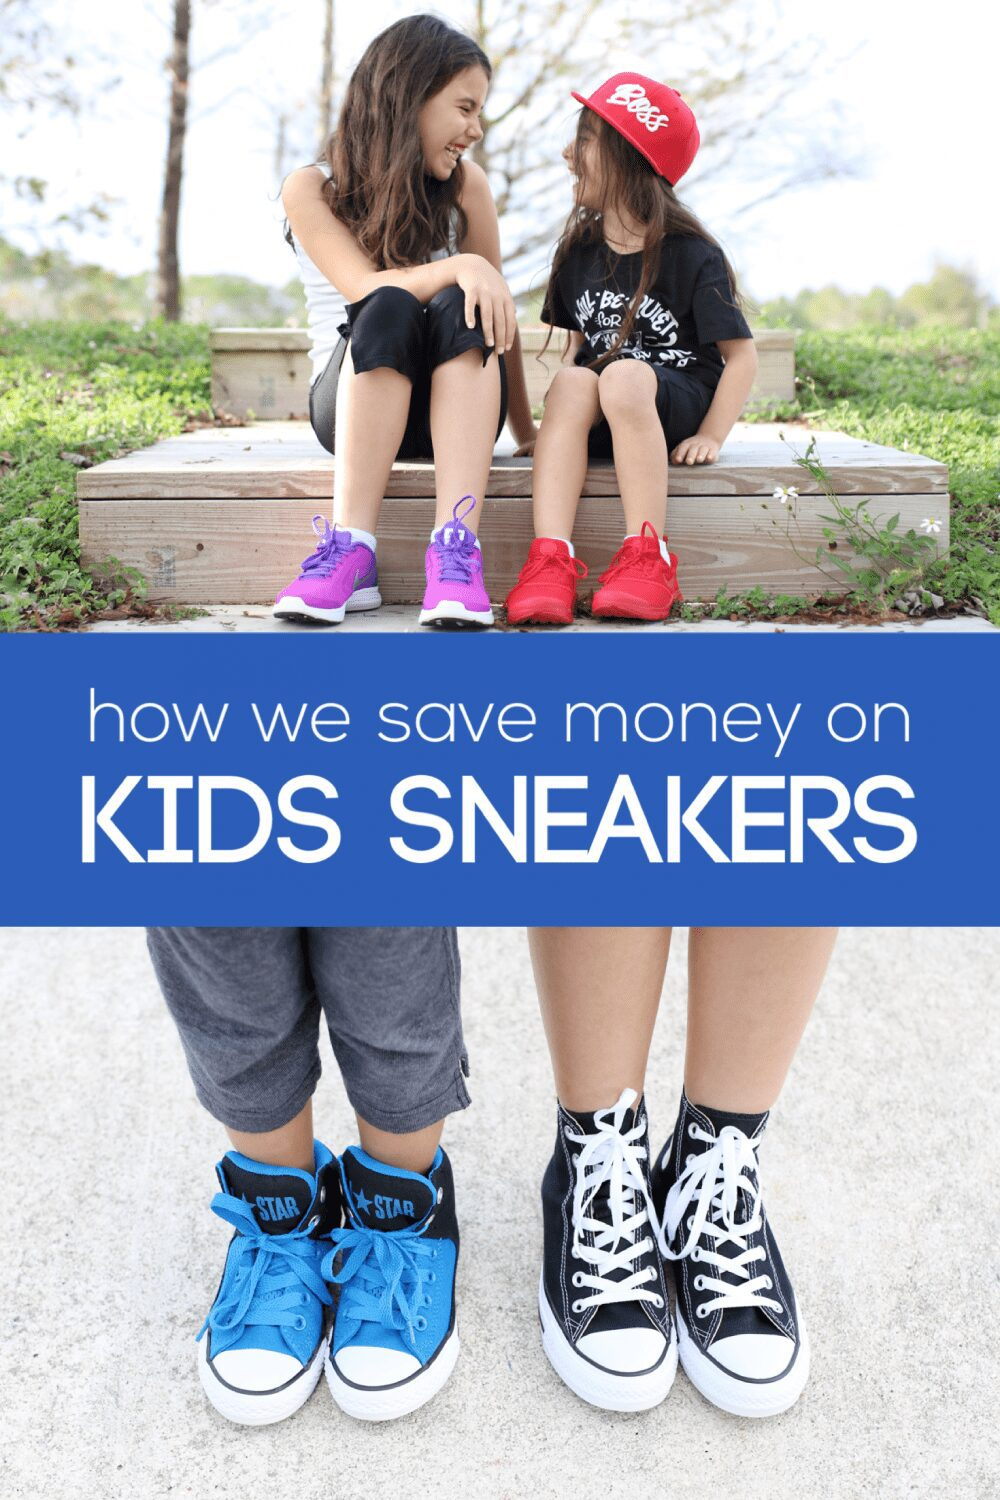 Our kids feet grow way faster than our wallets can handle. So here is how we keep our kids in the best quality sneakers AND save money!